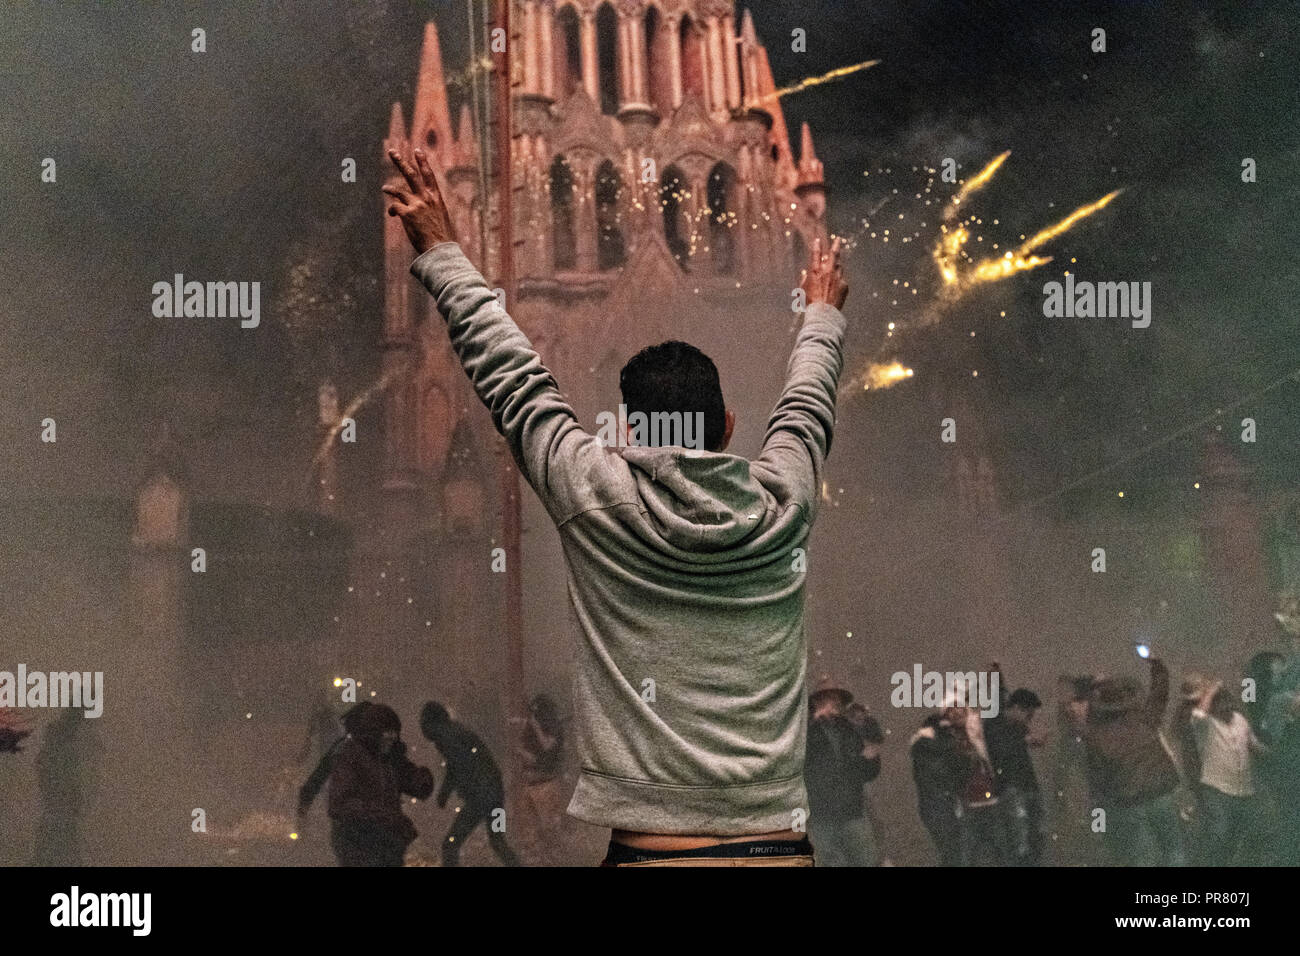 San Miguel de Allende, Mexico. 29th Sept 2018. A Mexican man holds his arms up at the San Miguel Archangel church during a barrage of sky rockets at the Alborada festival September 29, 2018 in San Miguel de Allende, Mexico. The unusual festival celebrates the cities patron saint with a two hour-long firework battle at 4am representing the struggle between Saint Michael and Lucifer. Credit: Planetpix/Alamy Live News - Stock Image